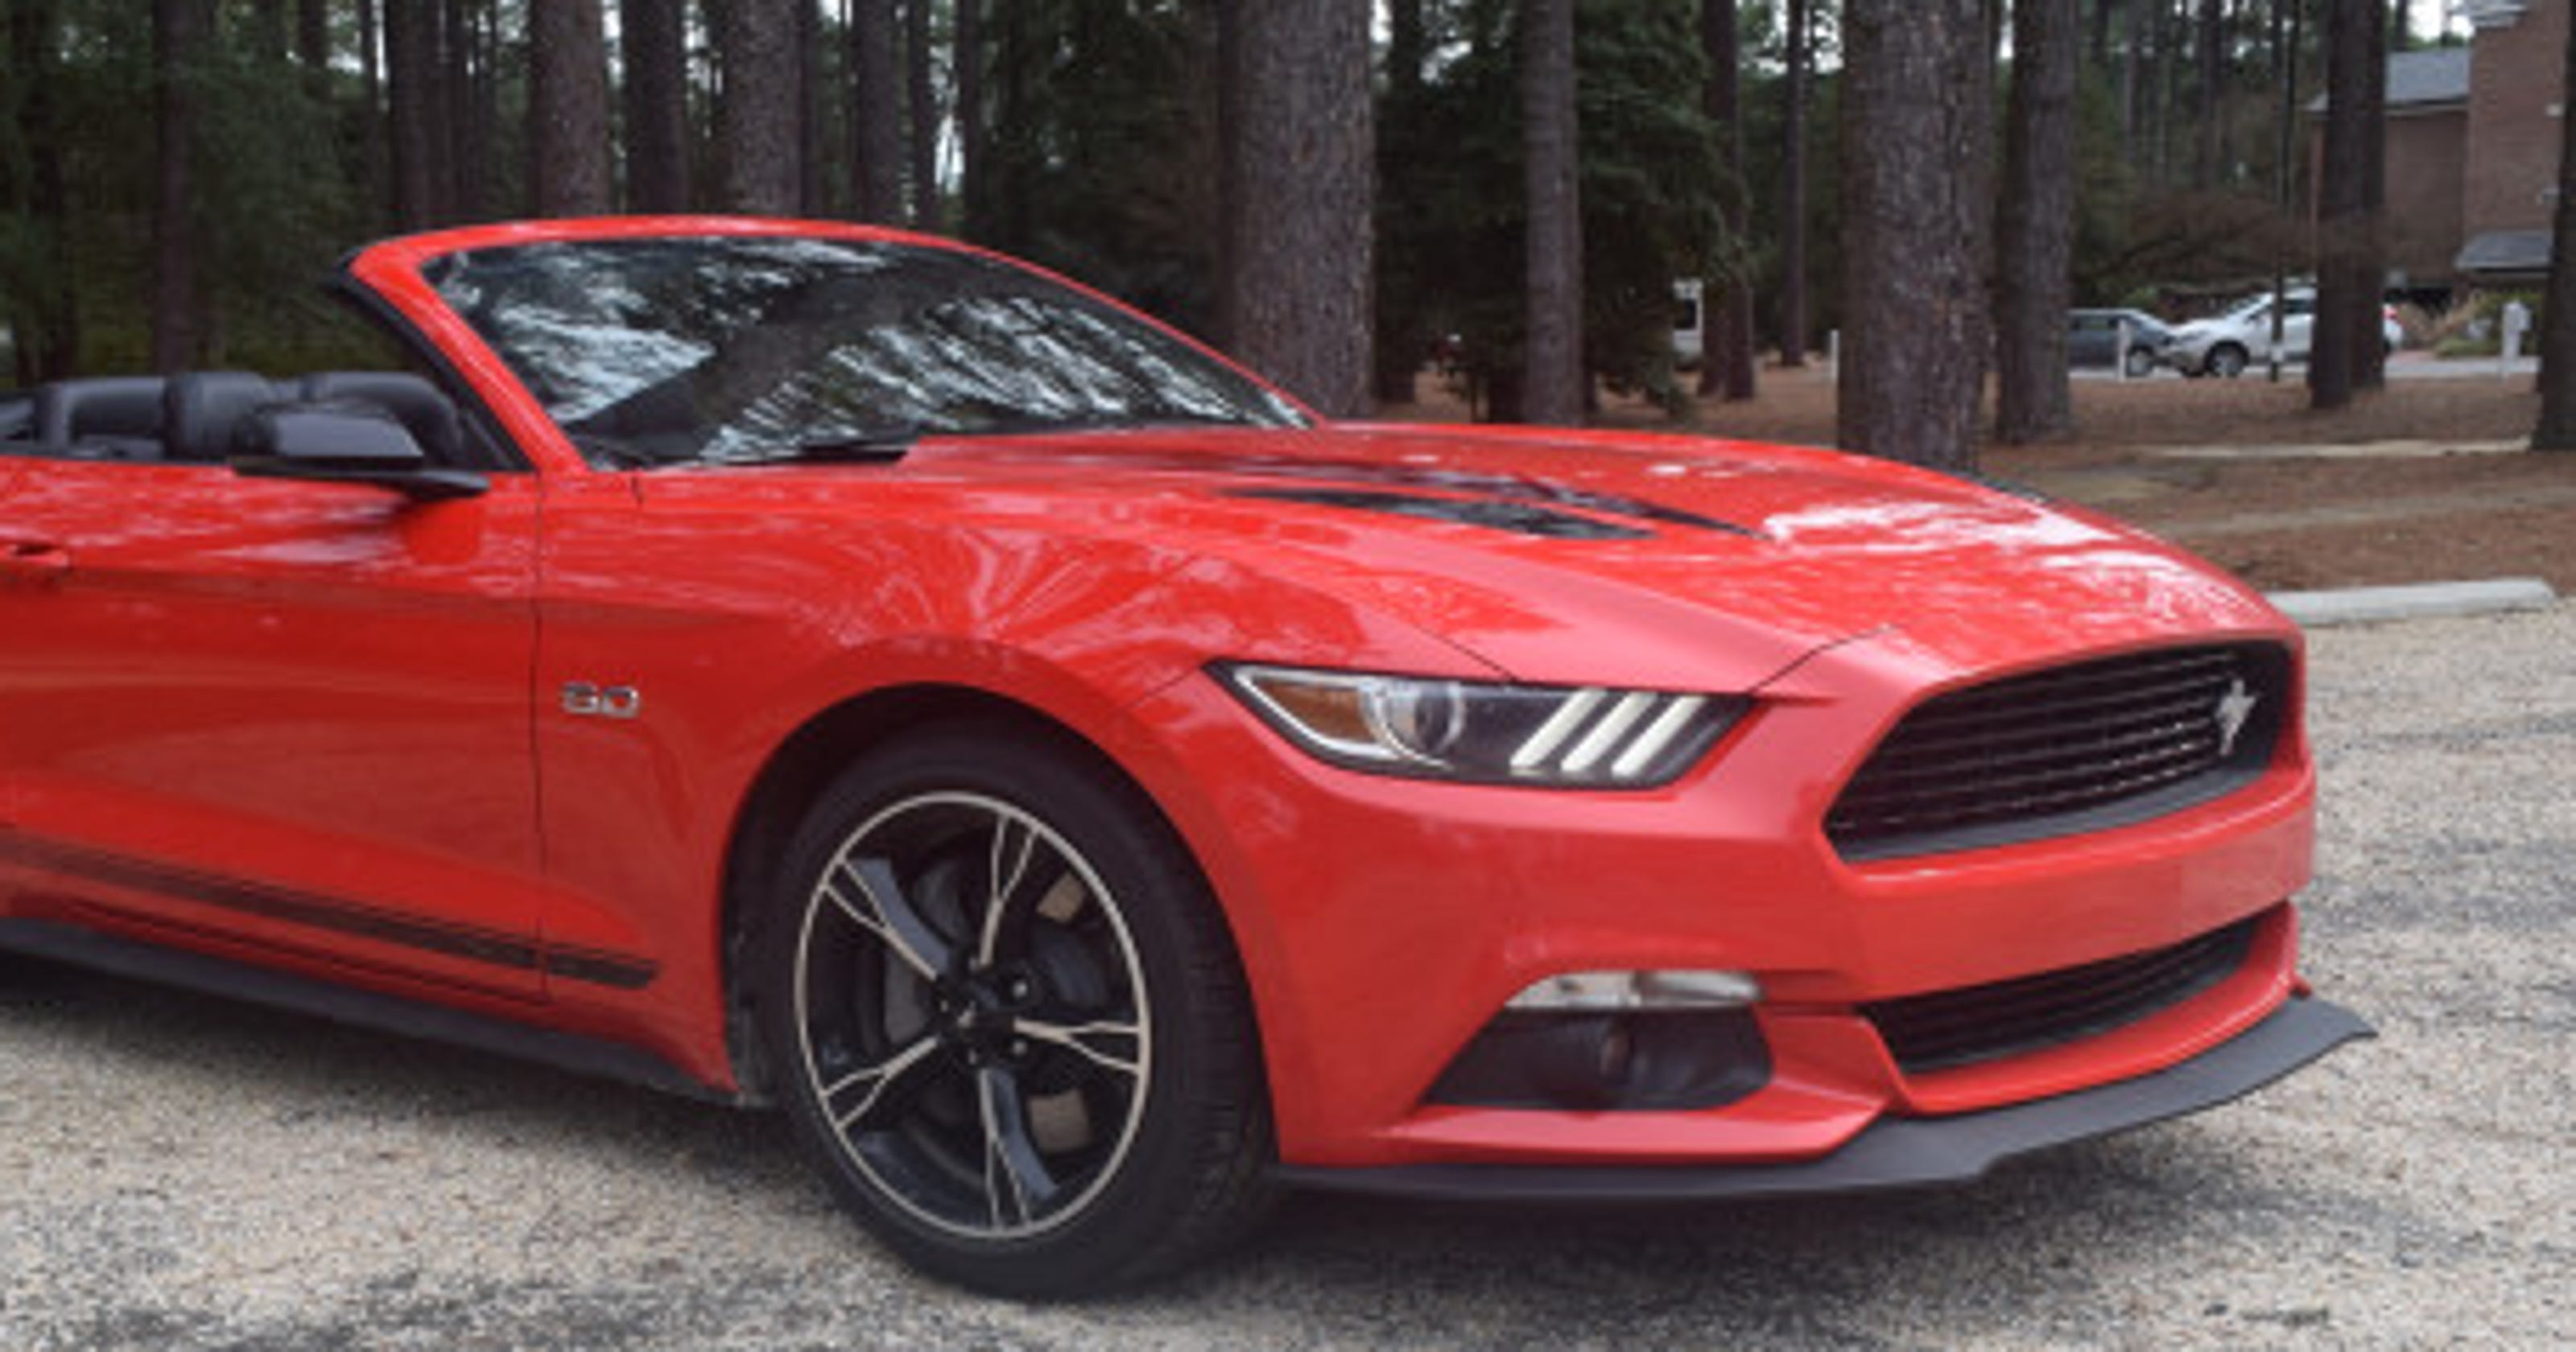 2016 mustang gt convertible review